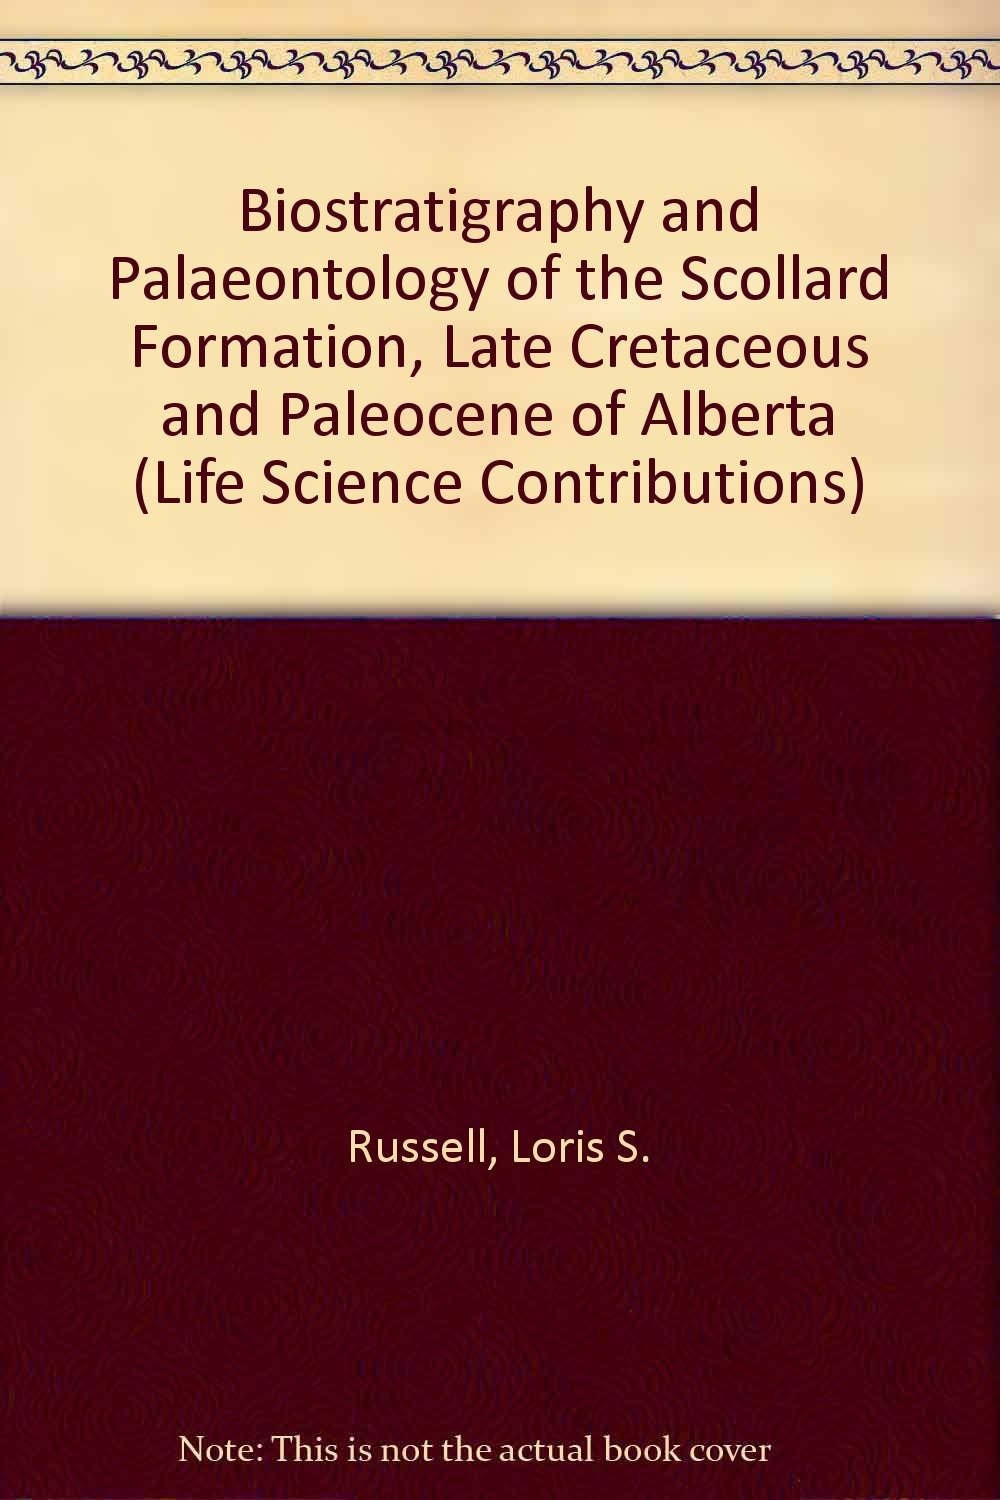 biostratigraphy-and-palaeontology-of-the-scollard-formation-late-cretaceous-and-paleocene-of-alberta-royal-ontario-museum-life-sciences-division-contributions